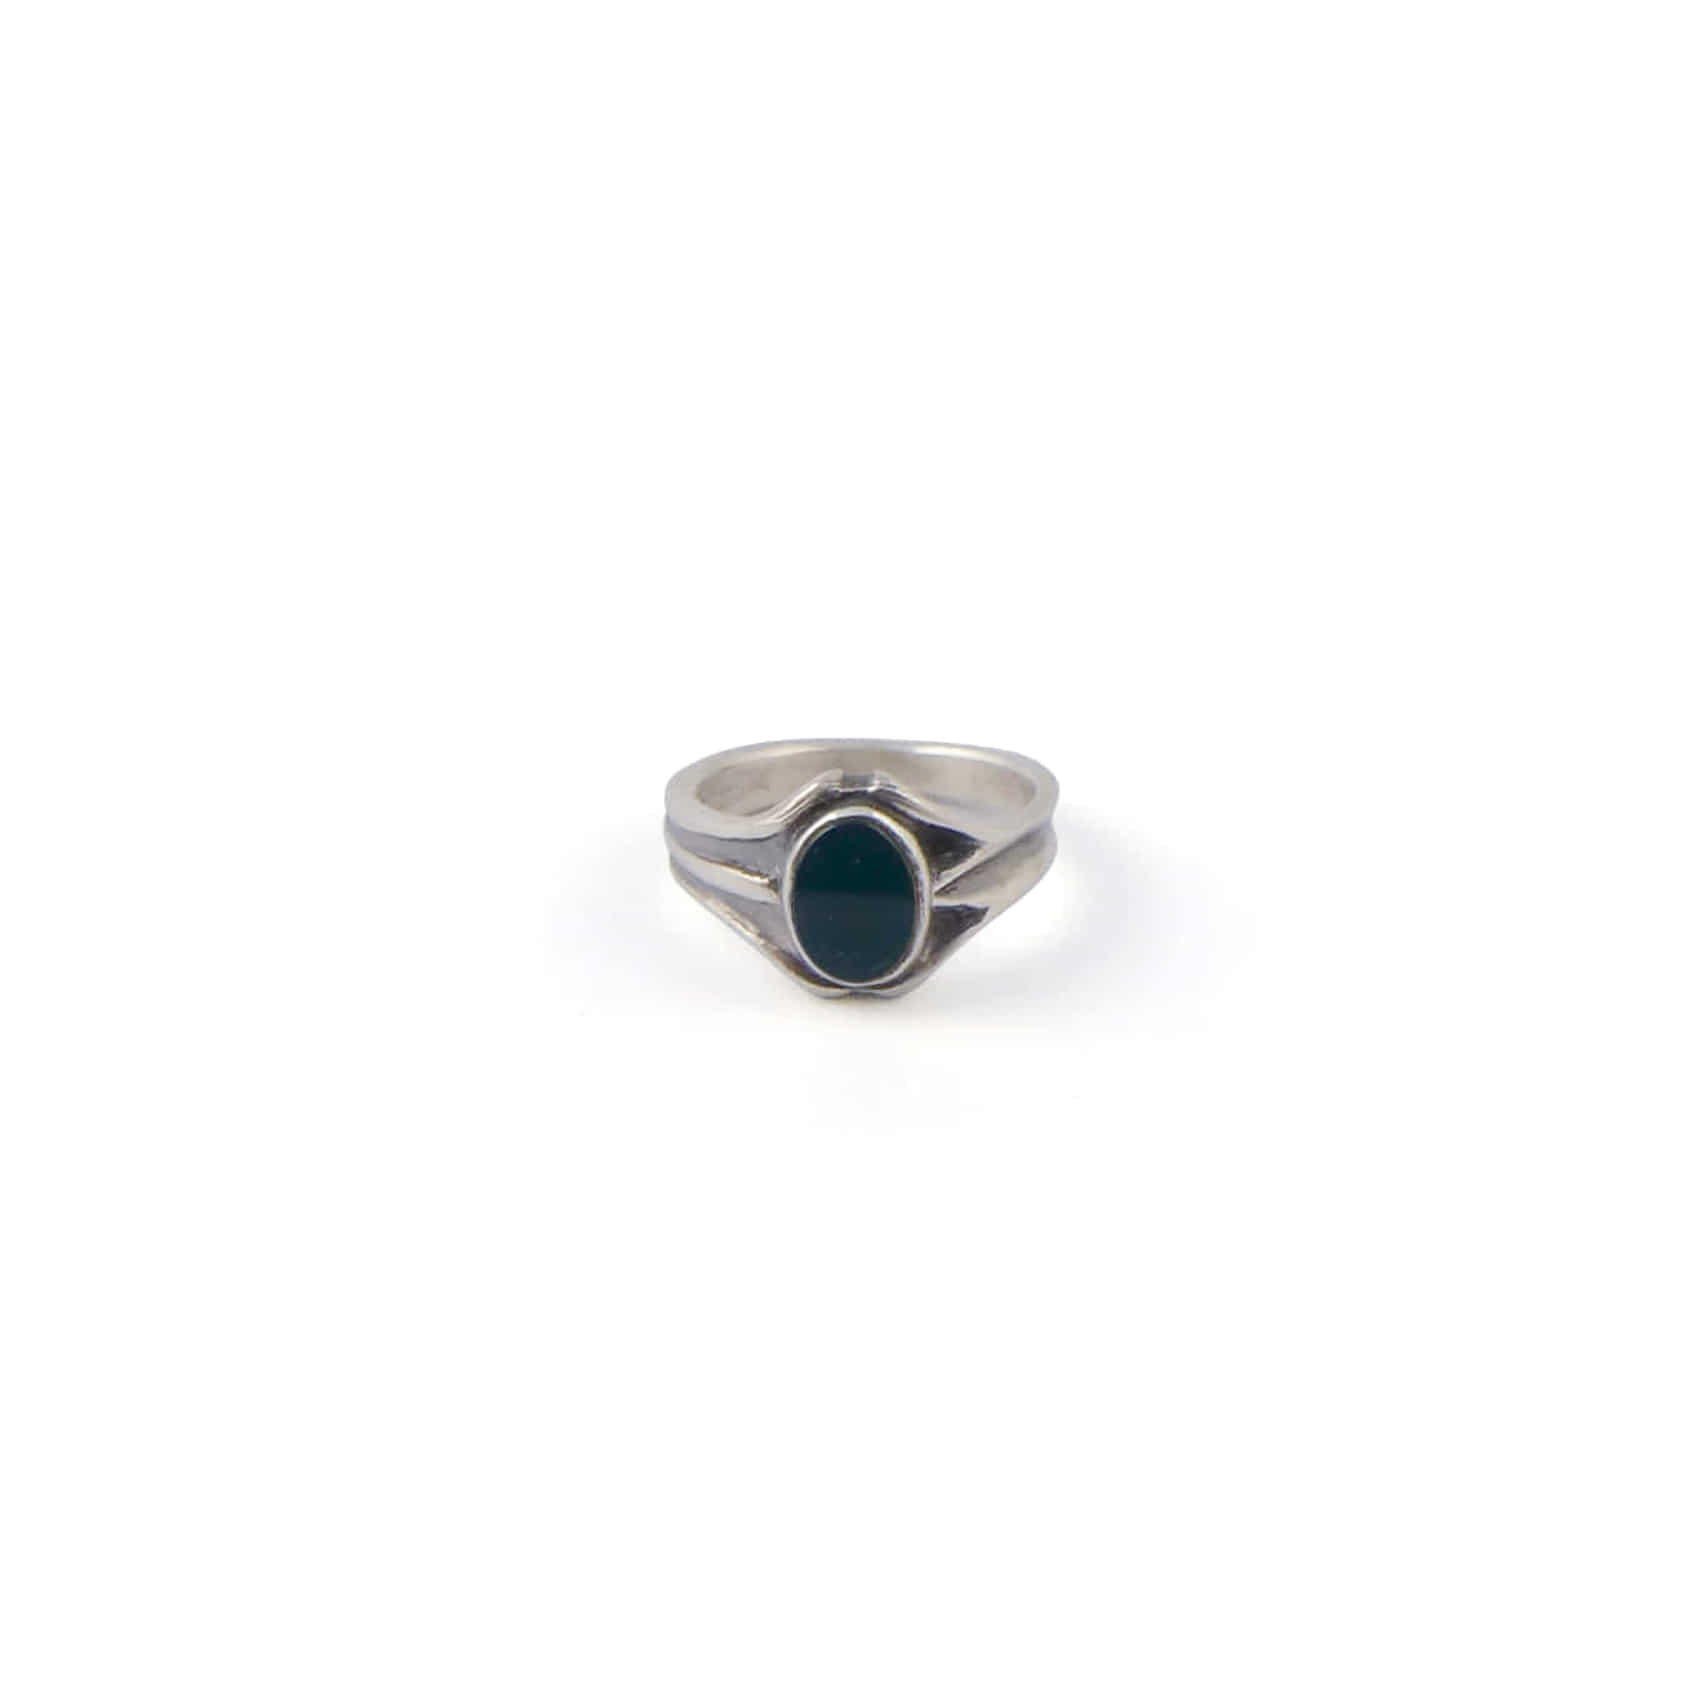 SILVER RING - ONE106-G